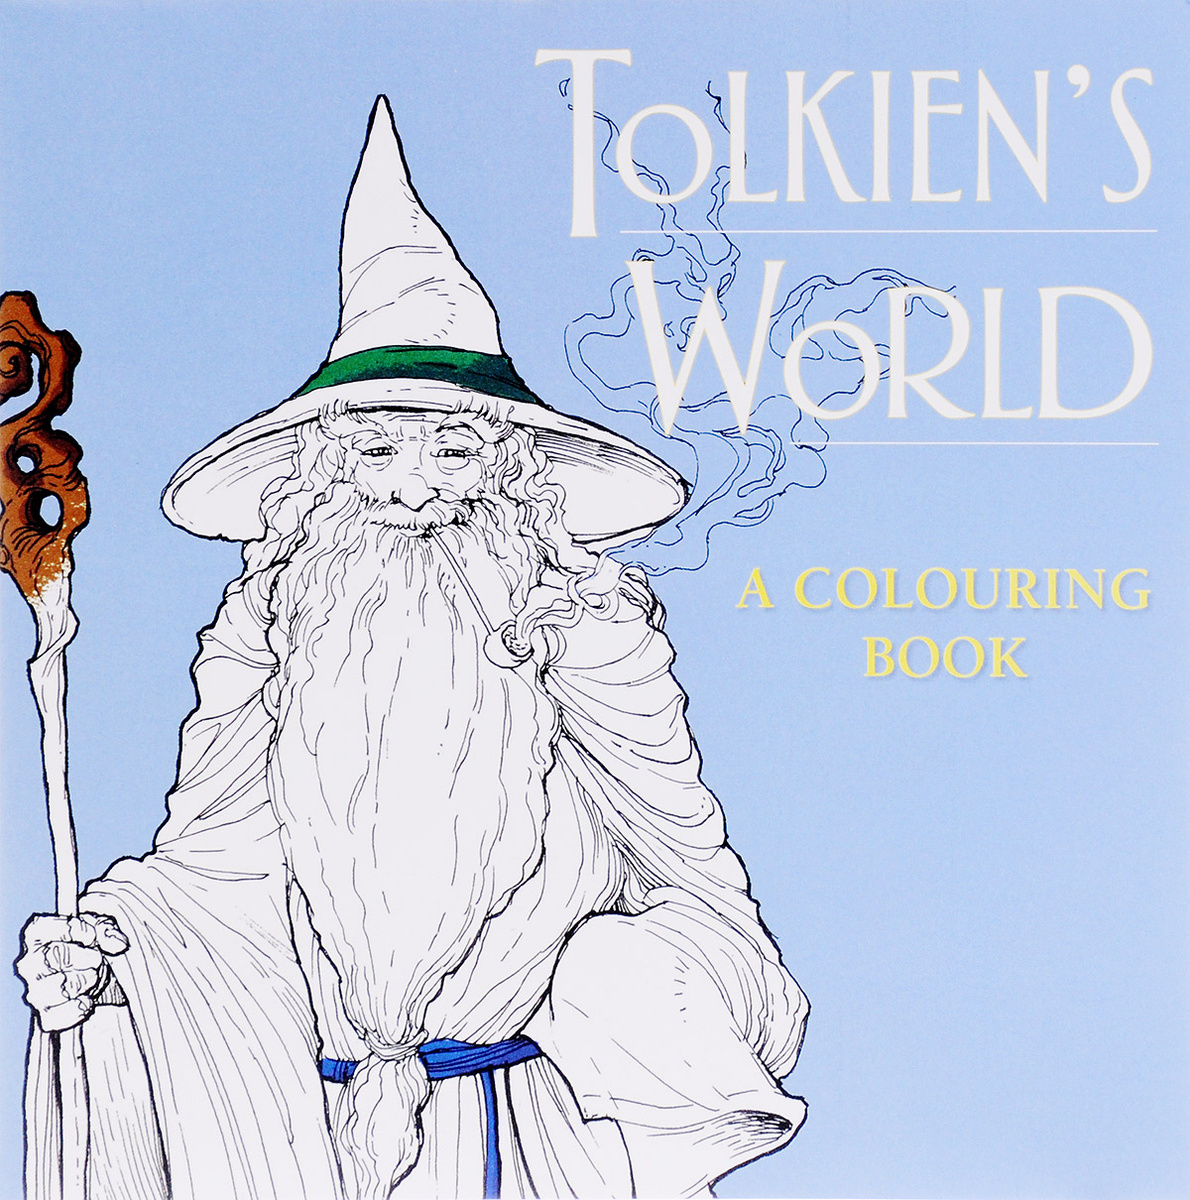 Tolkien's World: A Colouring Book #1